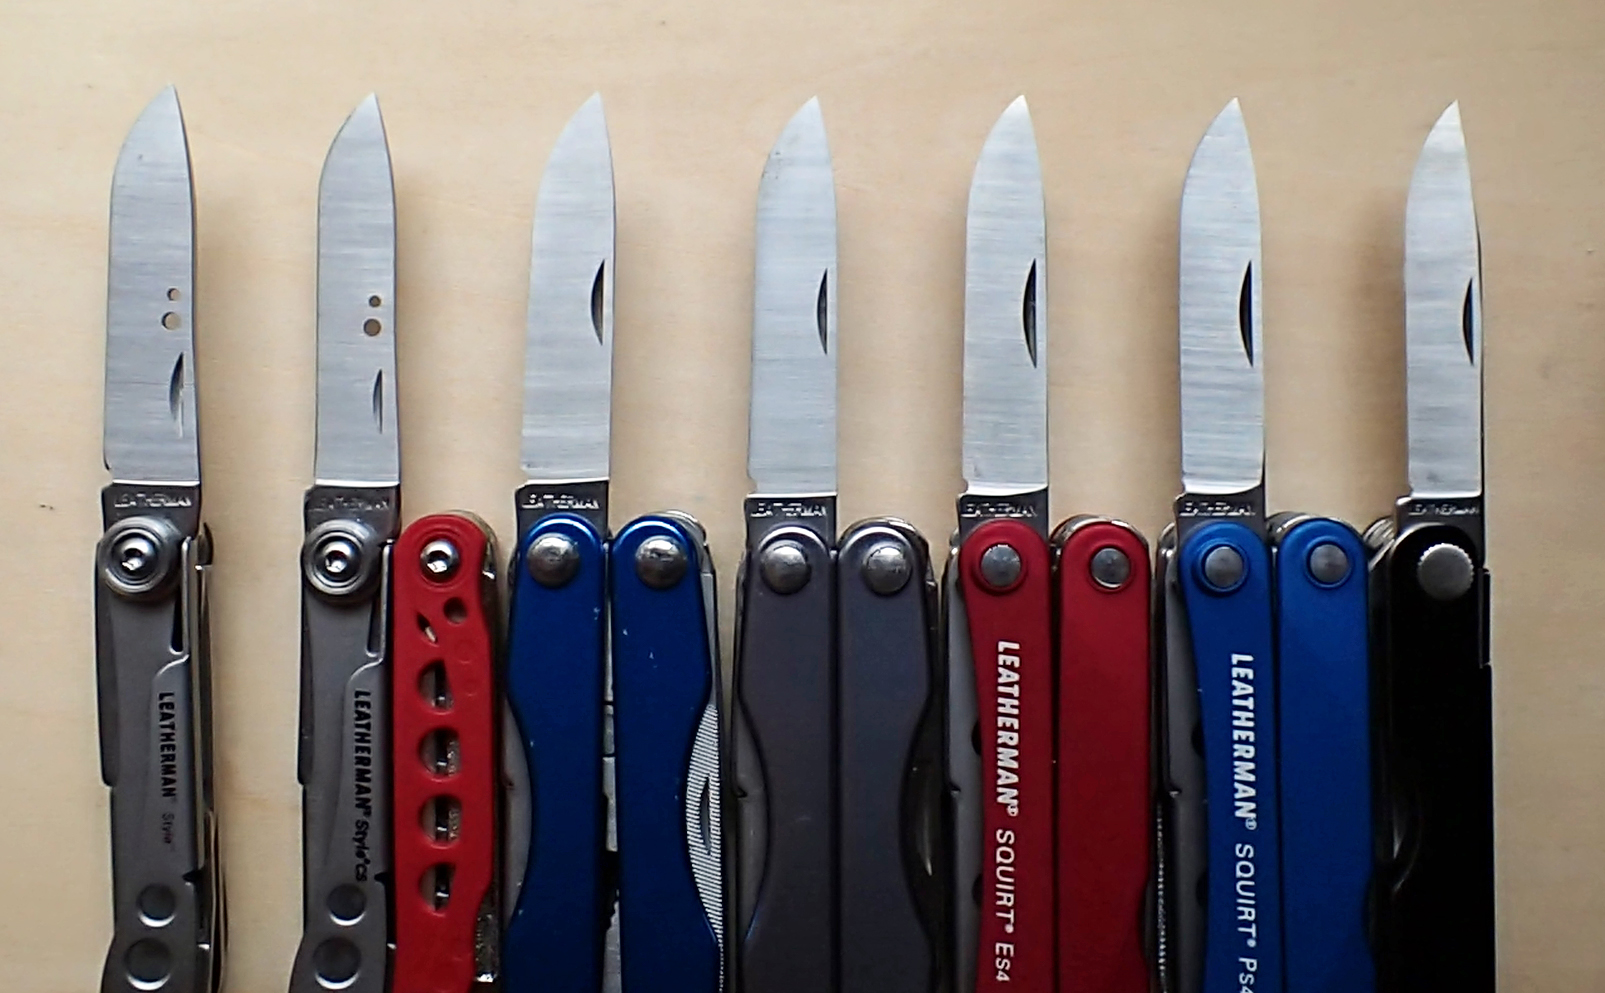 Small Leatherman blades compared. From left to right: Style, Style CS, Squirt P4, Squirt S4, Squirt ES4, Squirt PS4, Micra